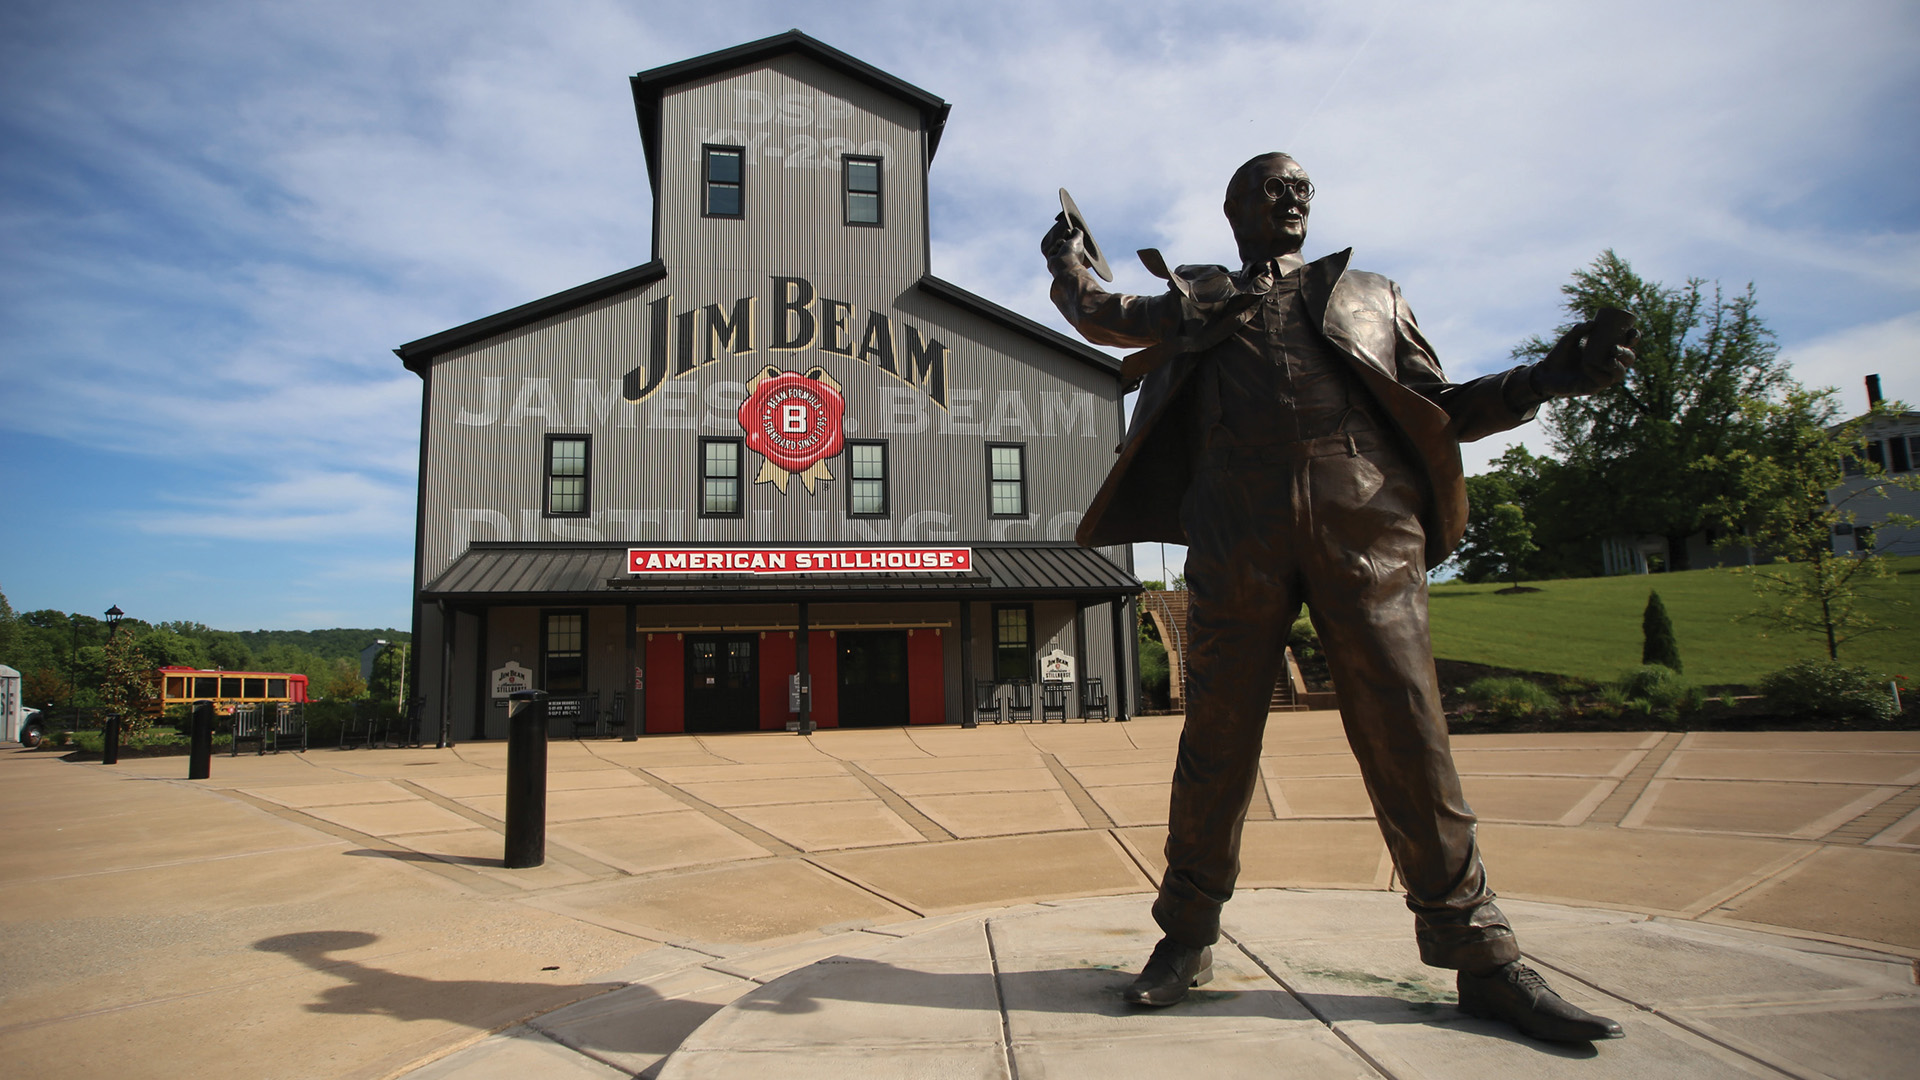 Jim Beam will be opening an Airbnb experience complete with bourbon tasting and a distillery tour